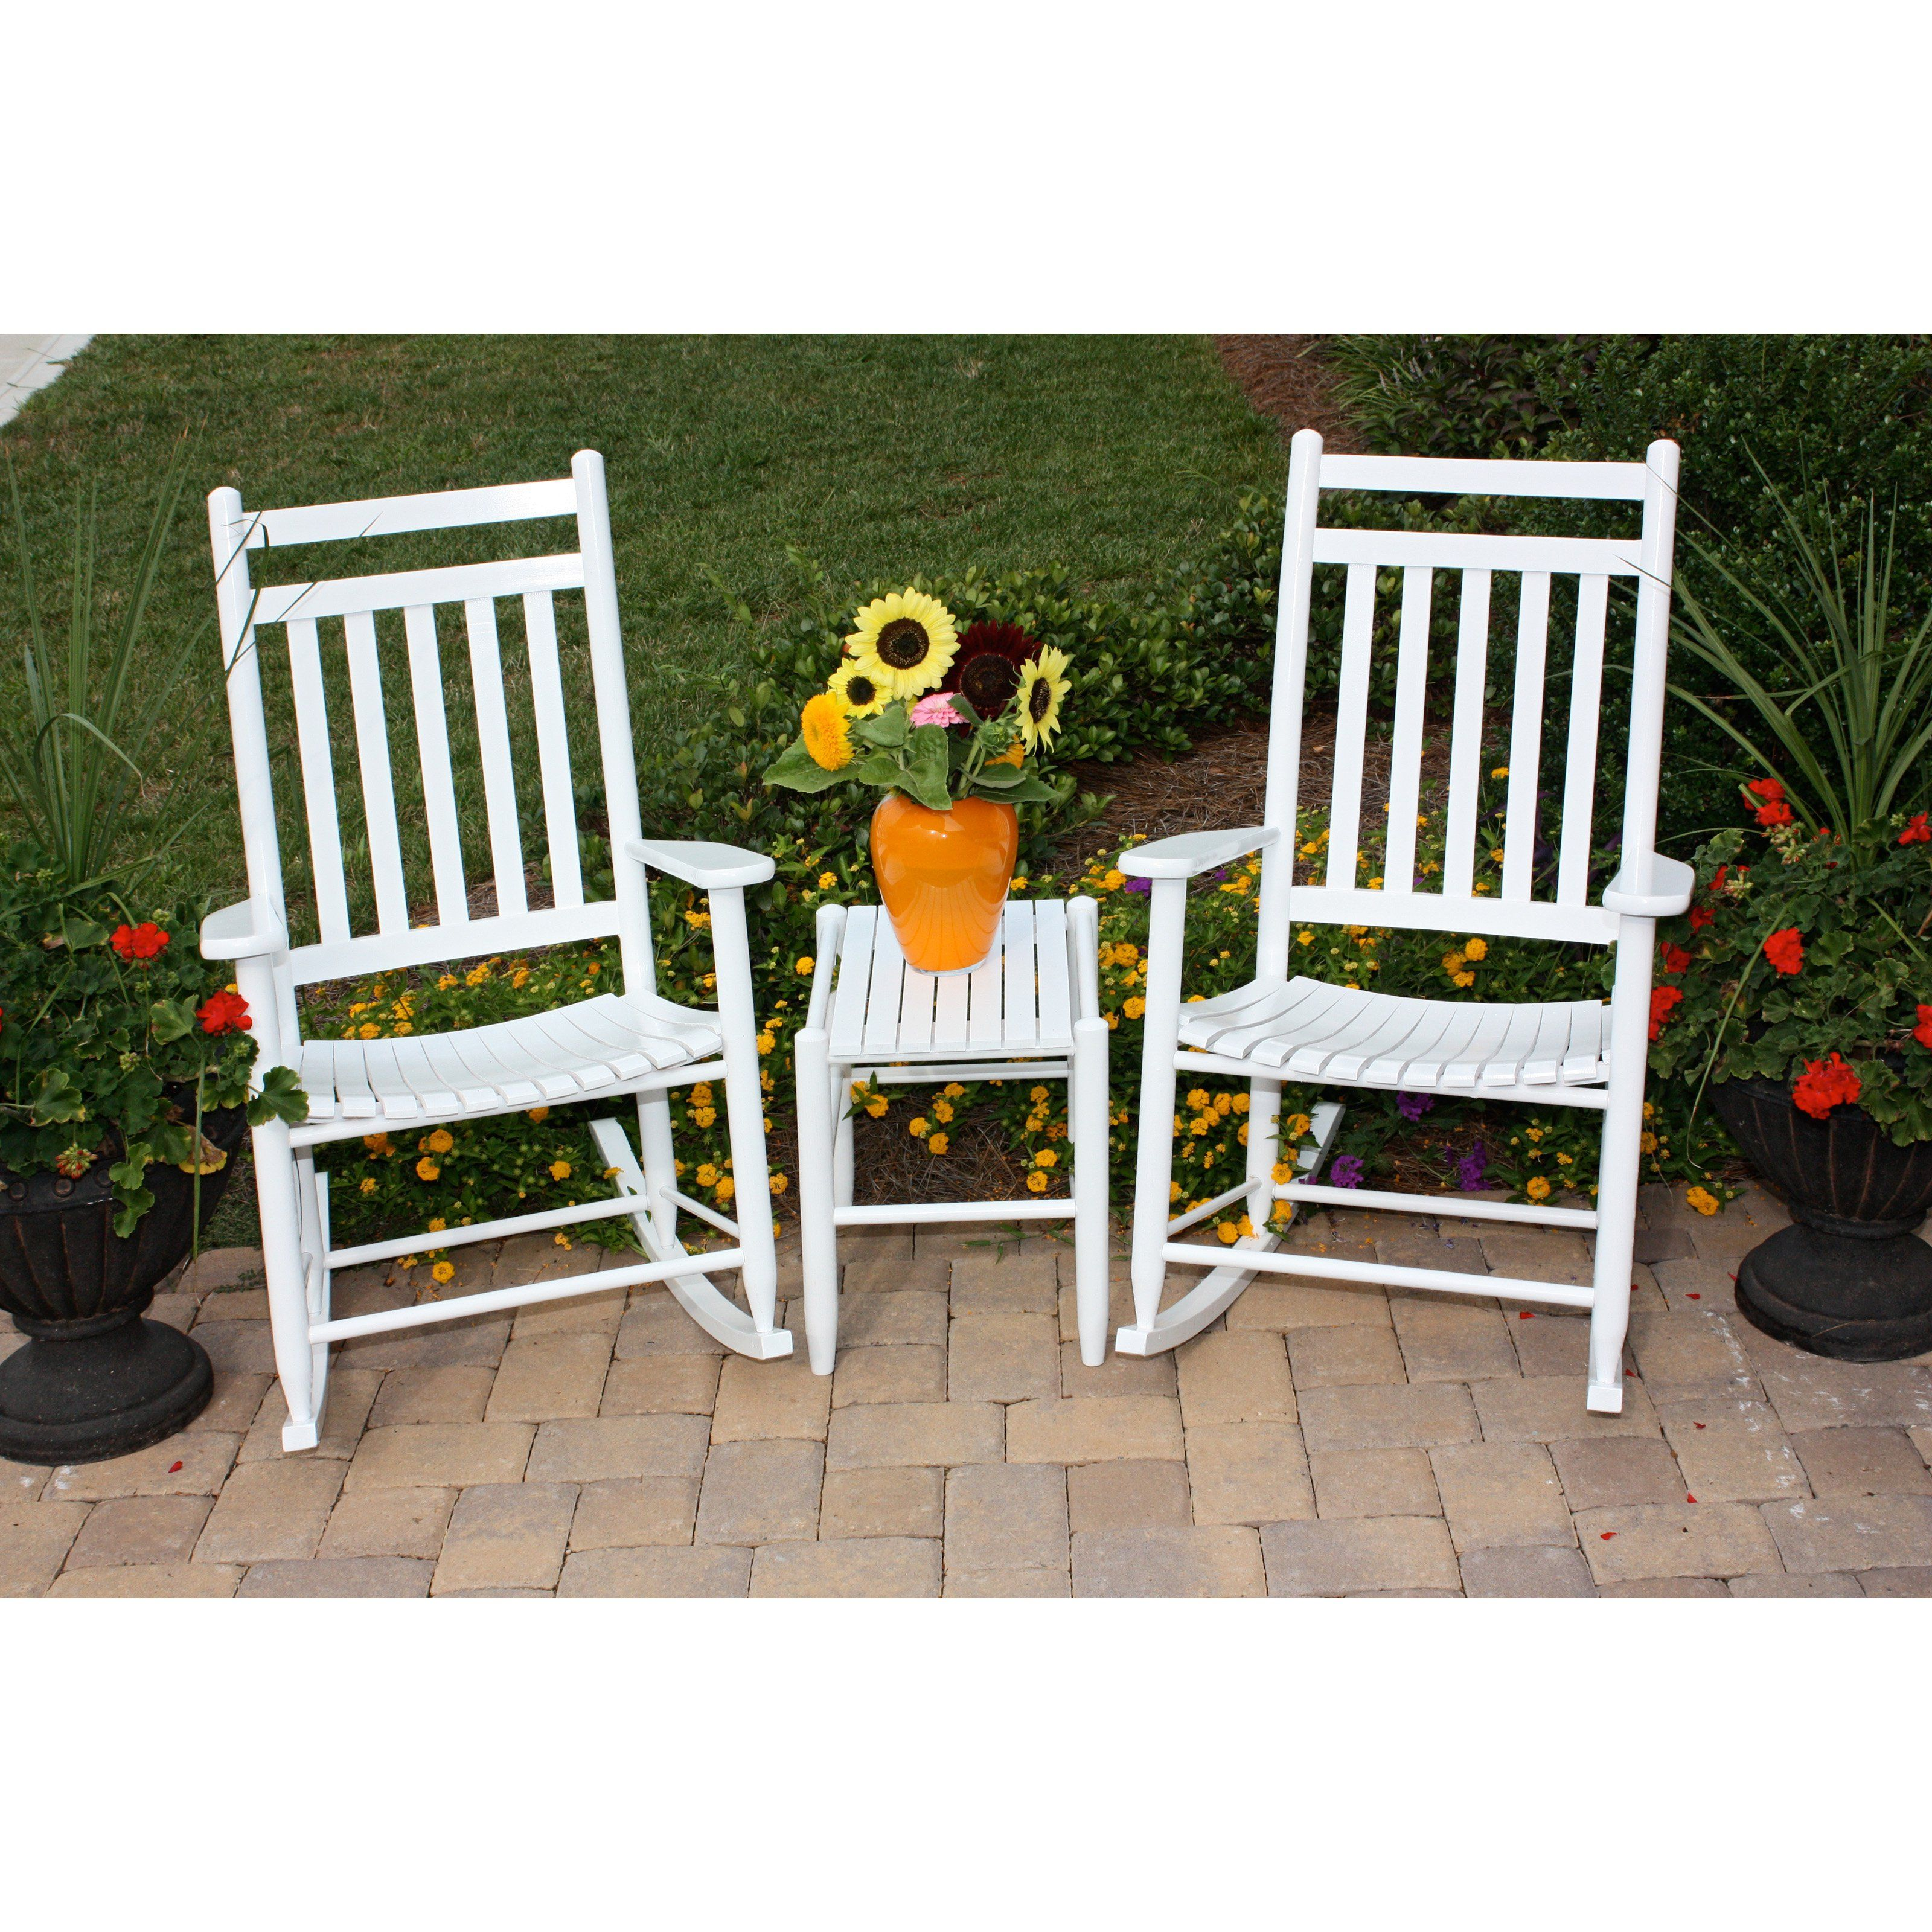 Outdoor Dixie Seating 3 Pc Slat Rocking Chair Set With Side Table